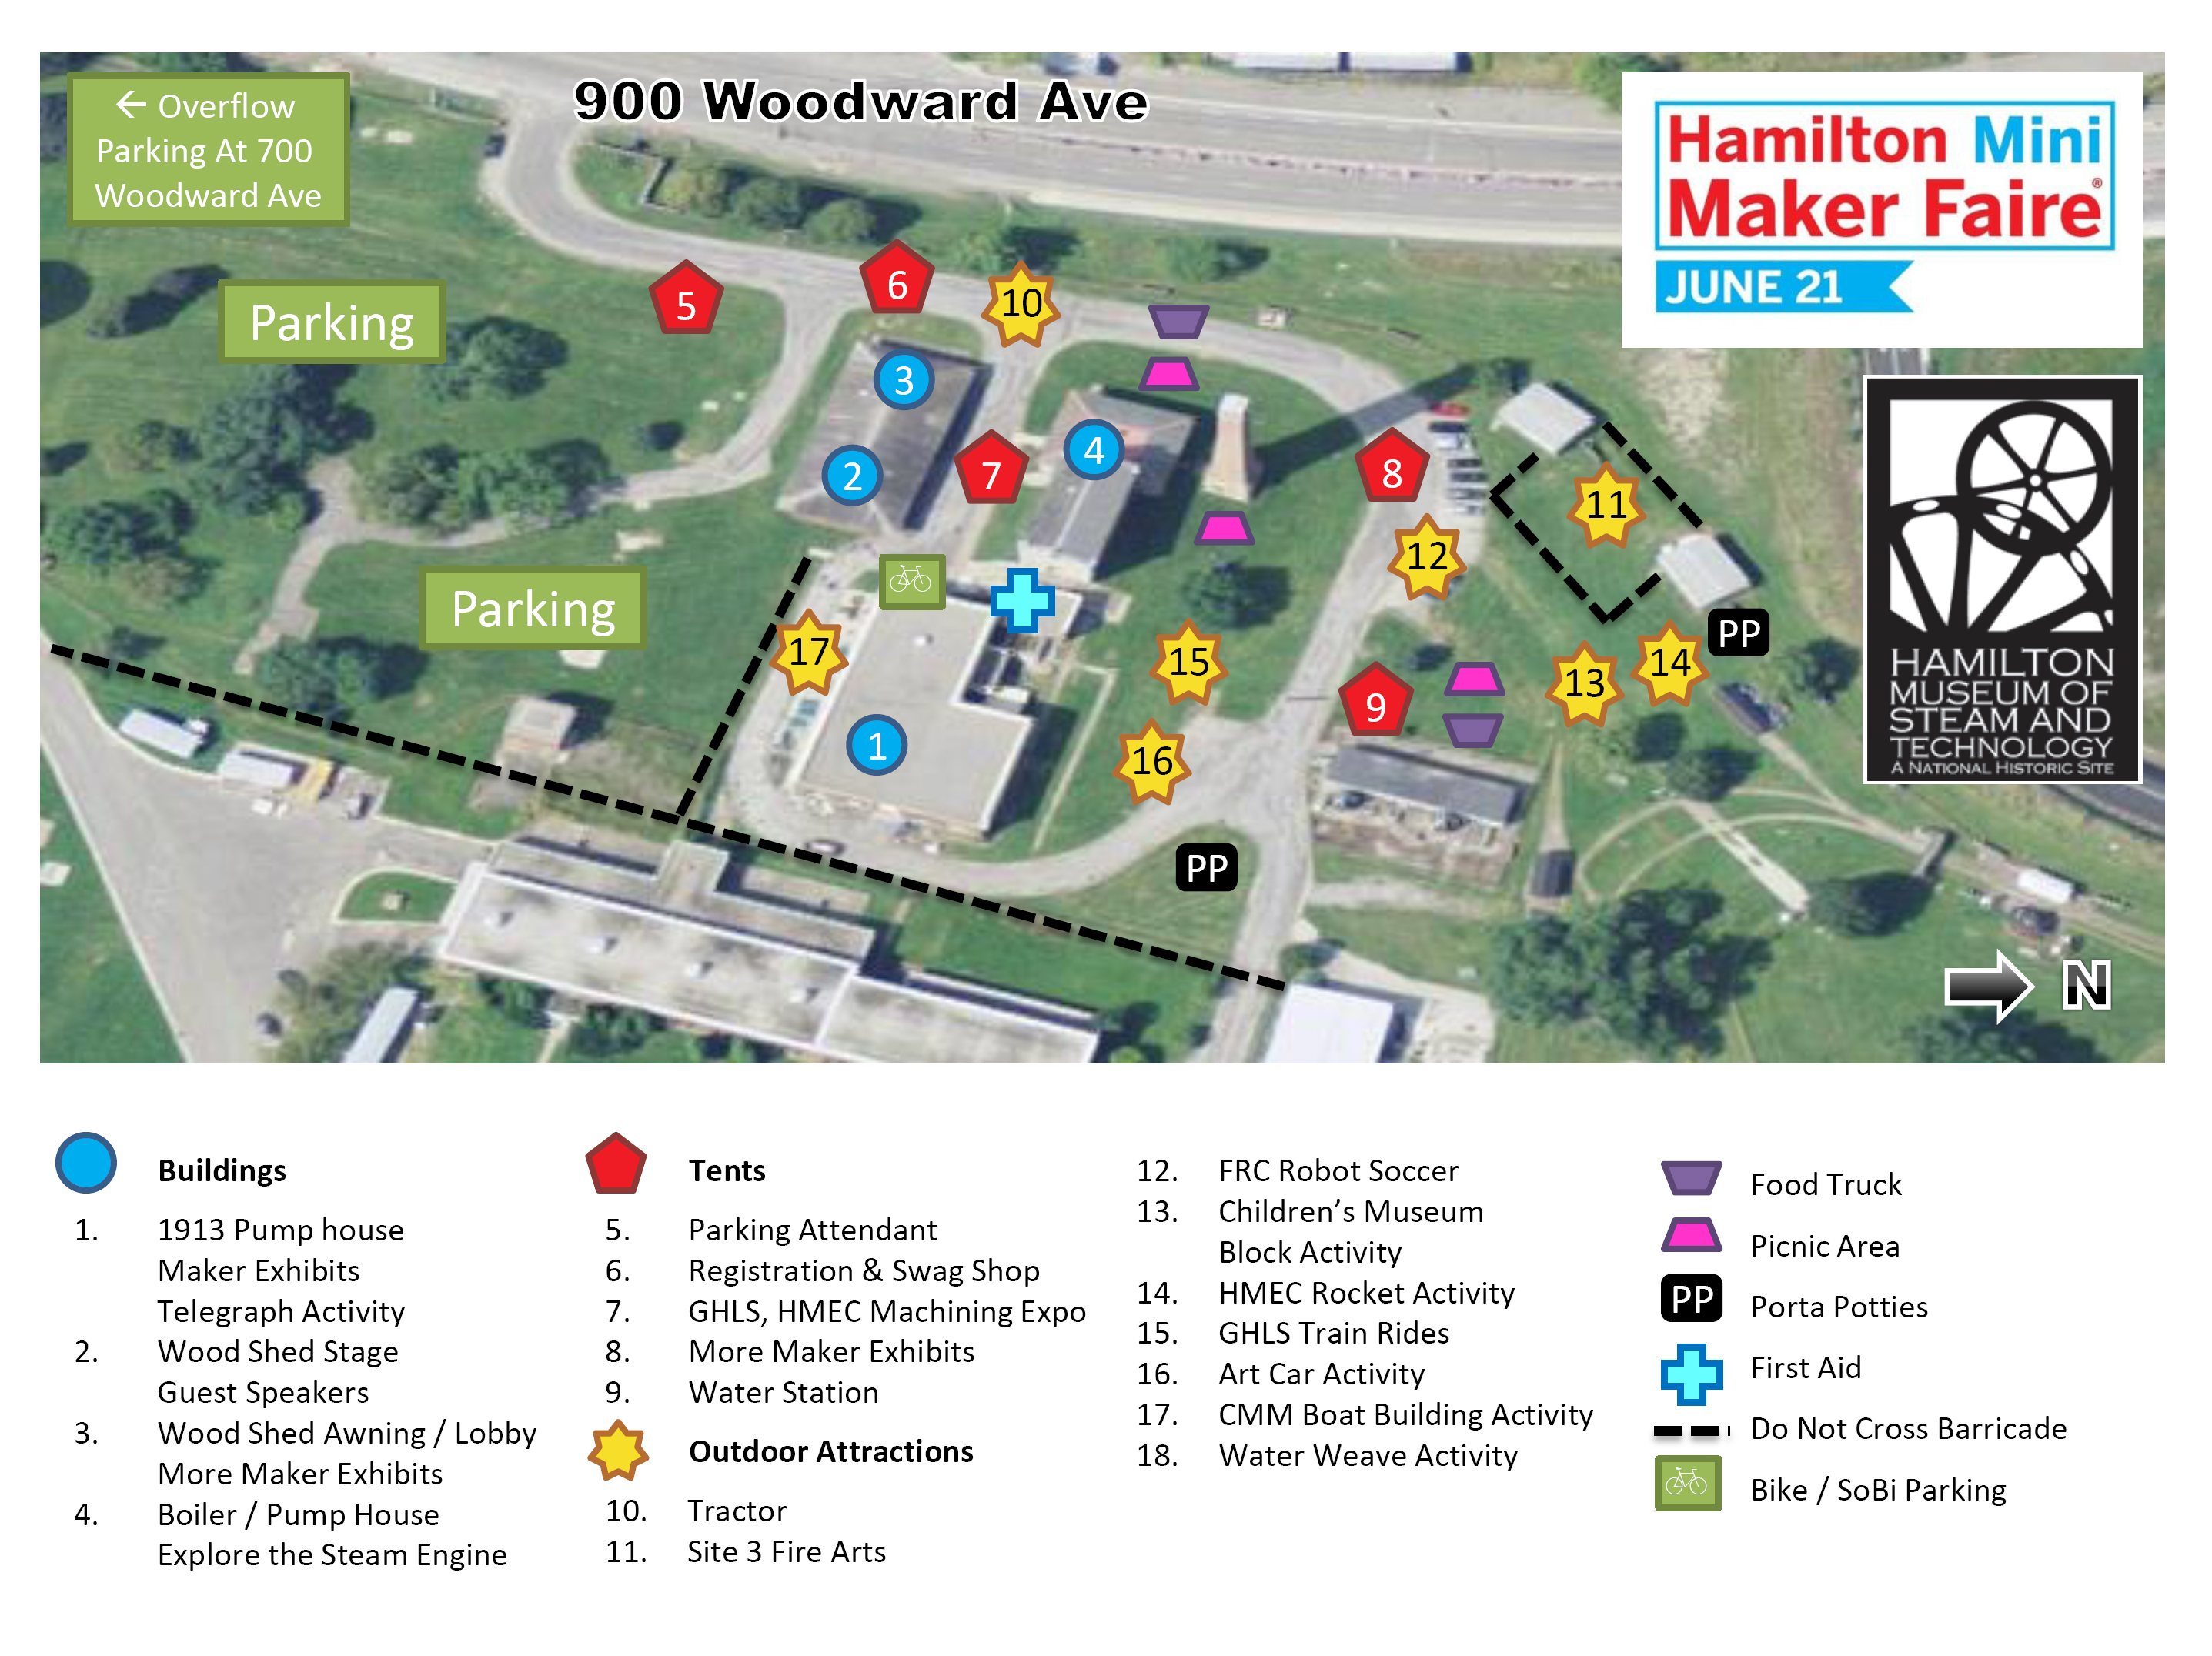 Hamilton Maker Faire Site Map Released | Hamilton Mini Maker ... on roblox map, wedding map, new york map, halloween map, maker fair map,